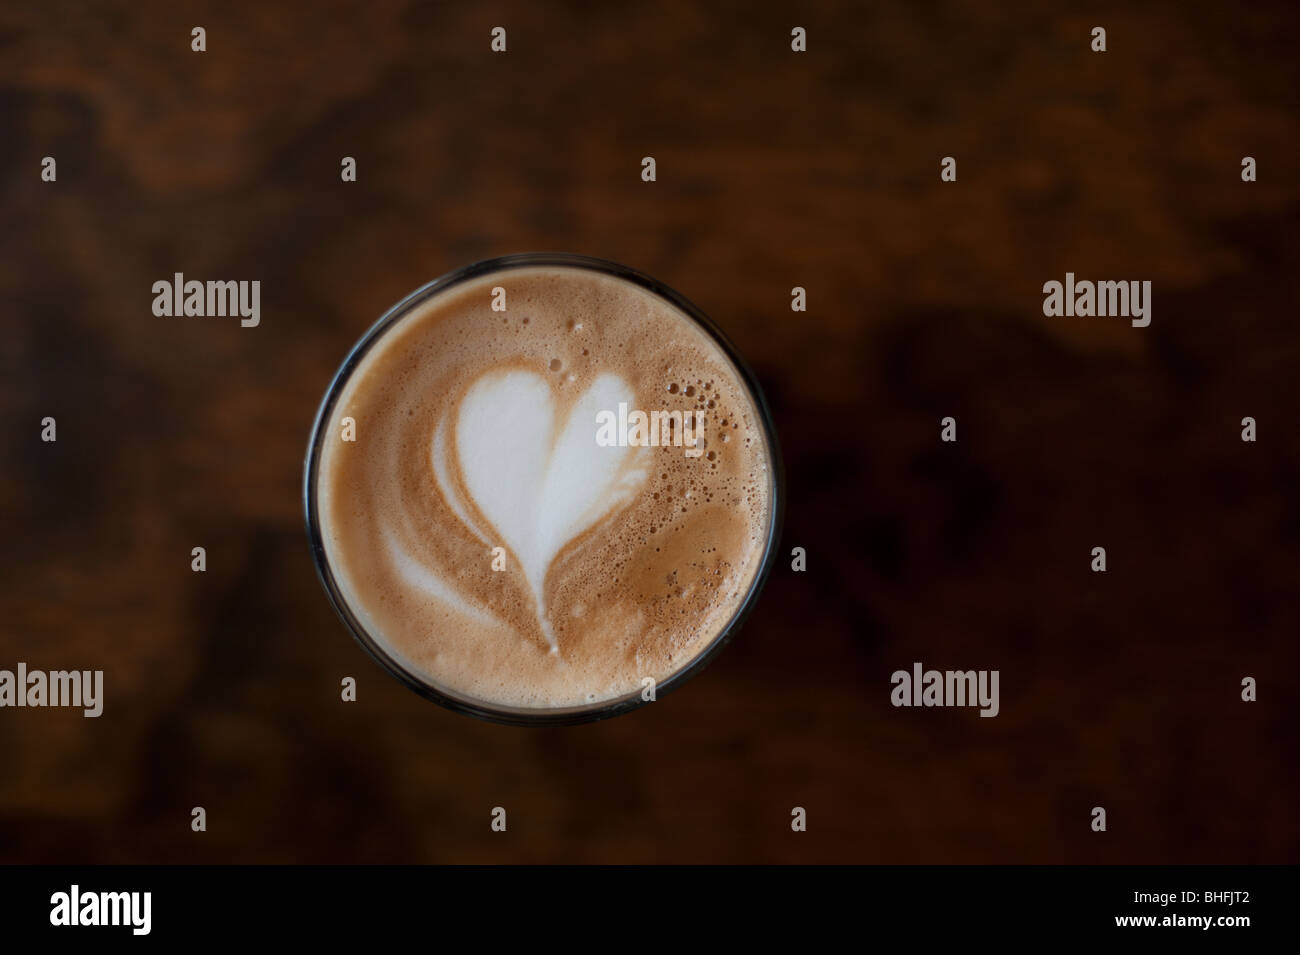 A love heart drawn in 'latte art' on top of a tall cafe latte coffee. - Stock Image